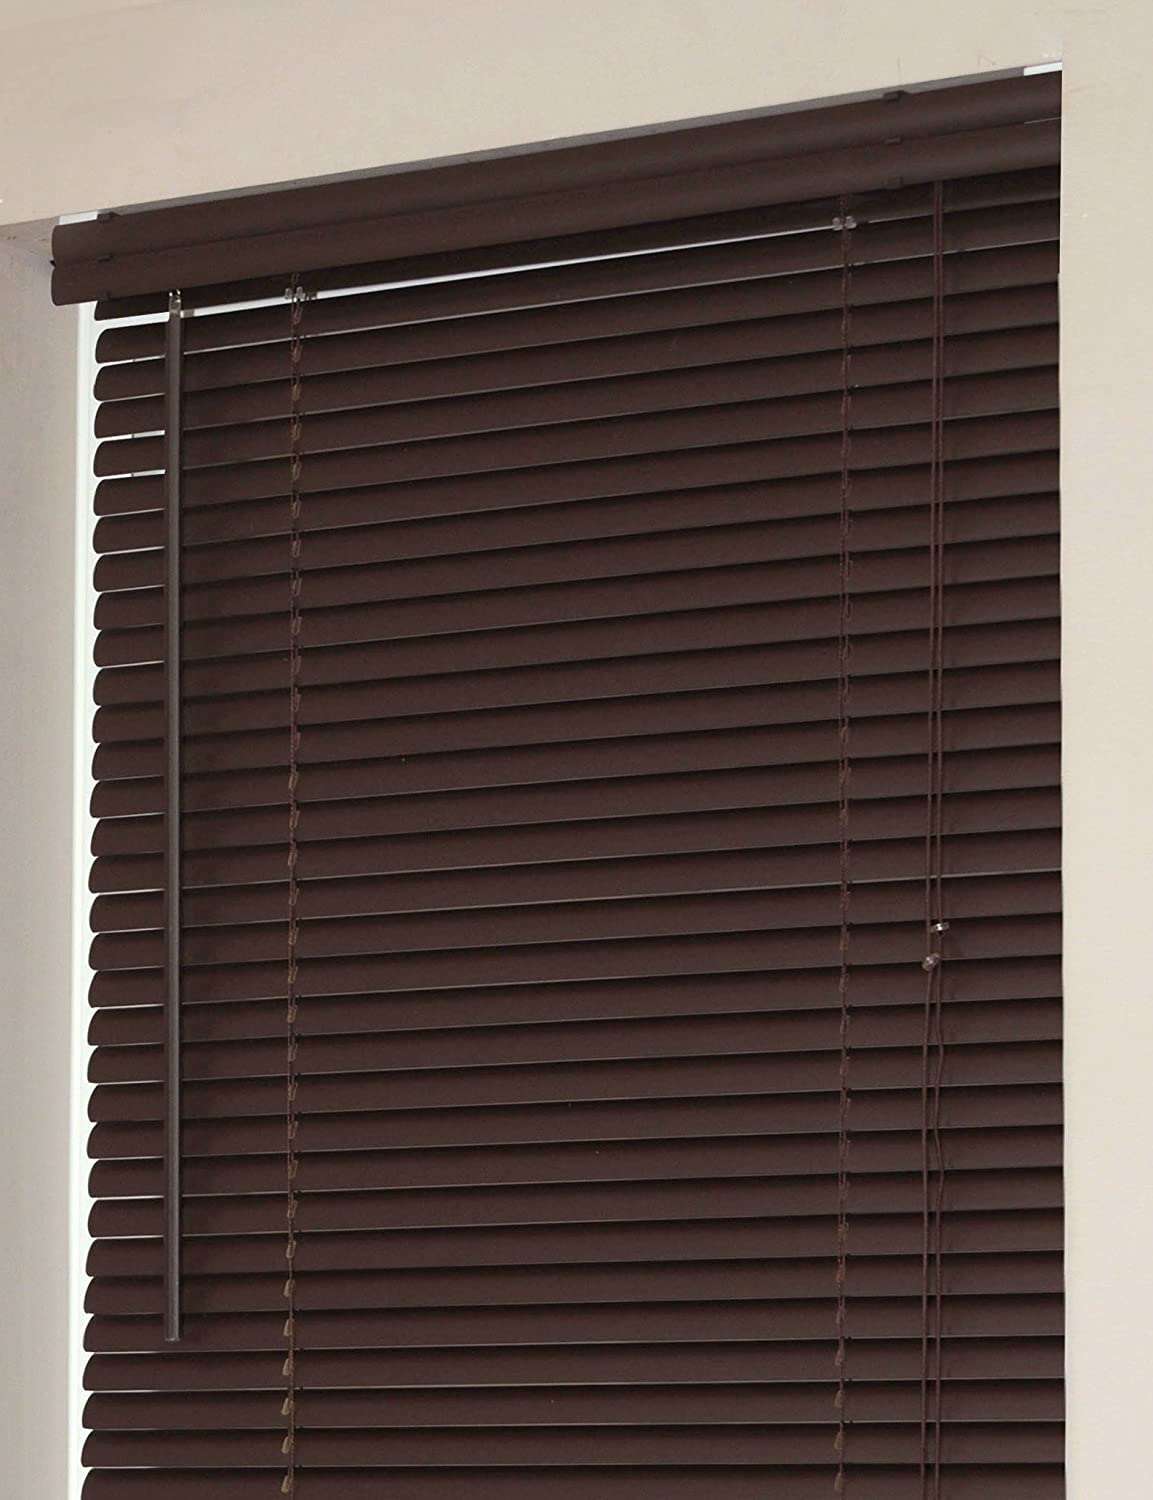 Achim Home Furnishings Morning Star 1-Inch Mini Blinds, 28 by 64-Inch, Chocolate VY2864CH06